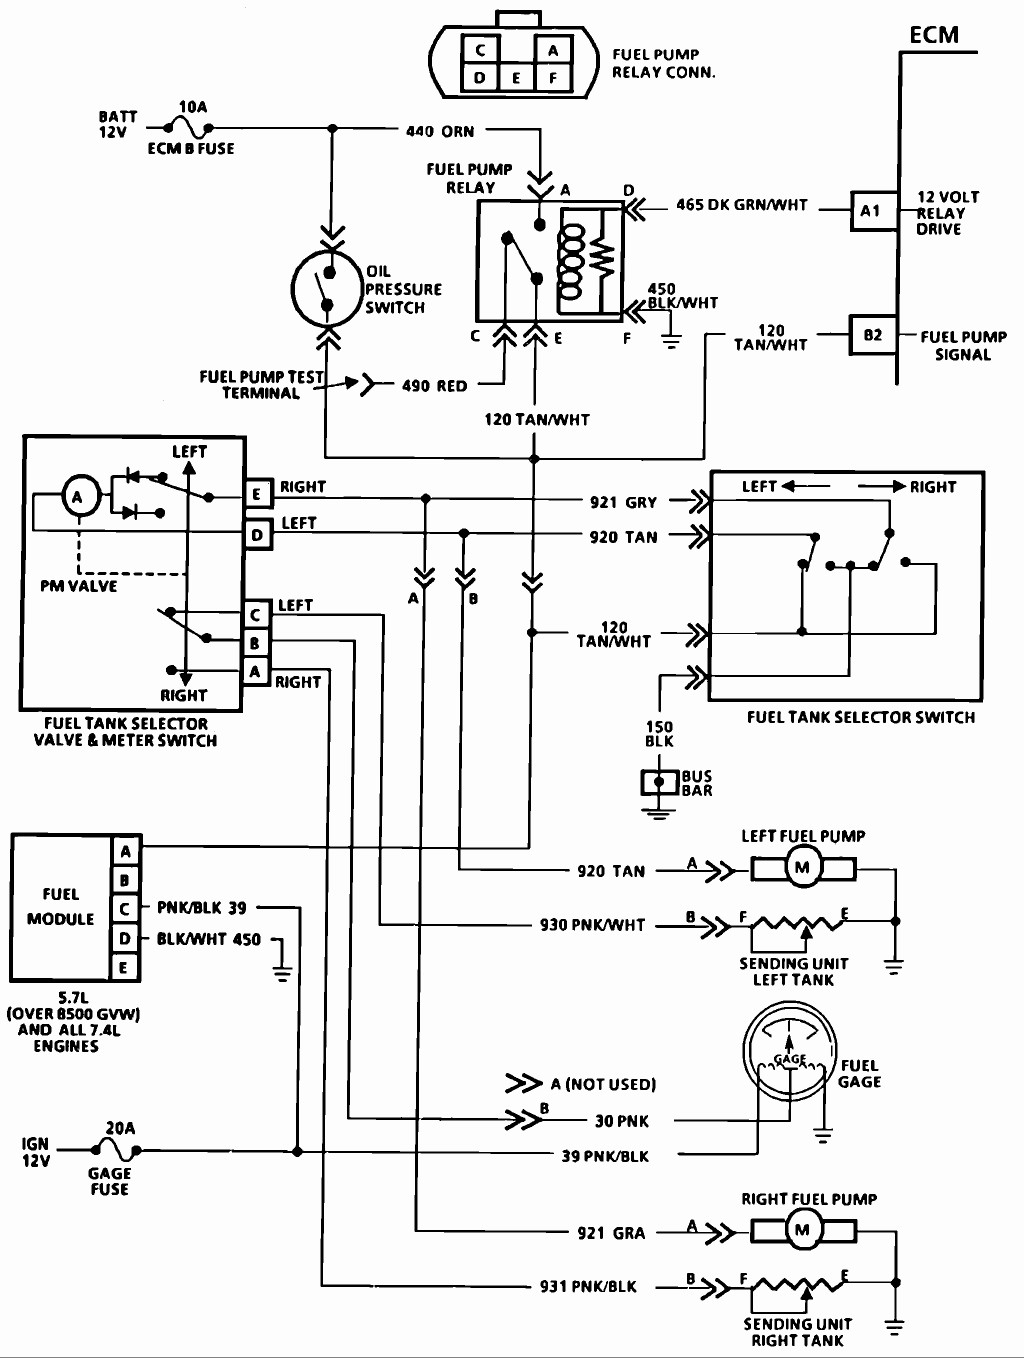 Diagram 1996 Gmc Cd Radio Wiring Diagram Full Version Hd Quality Wiring Diagram Wiringantennasm Padovasostenibile It